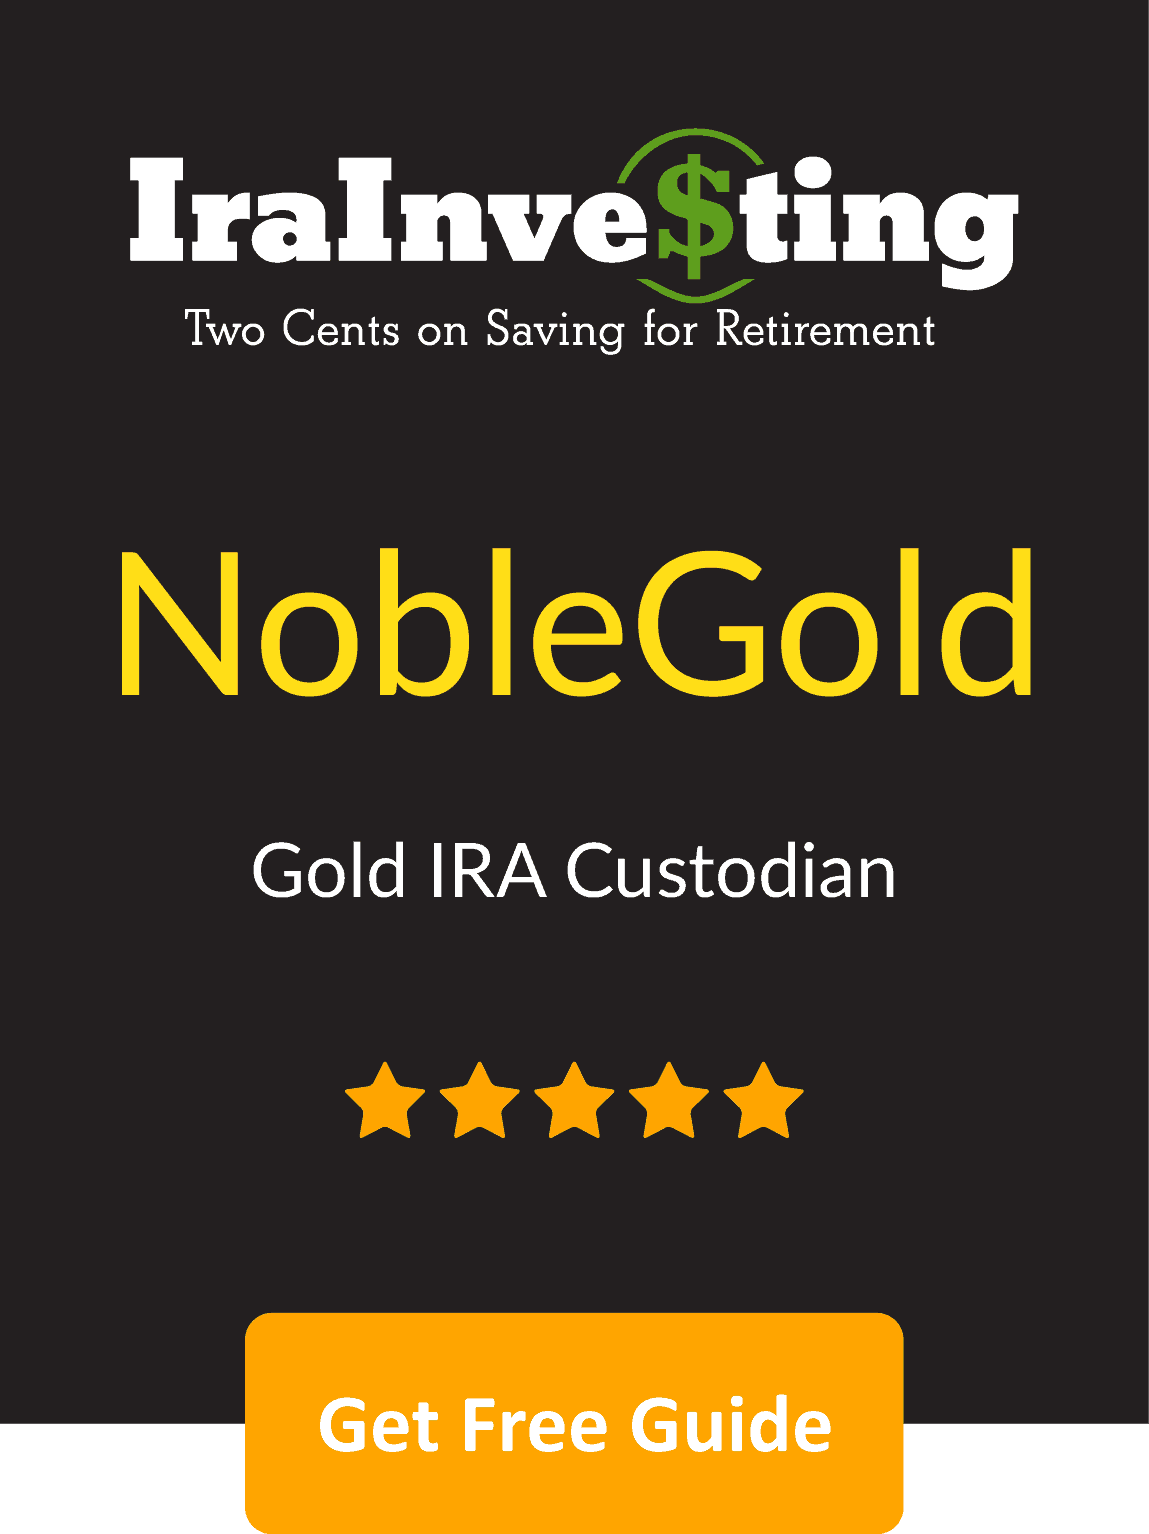 IRAInvesting Noble Gold